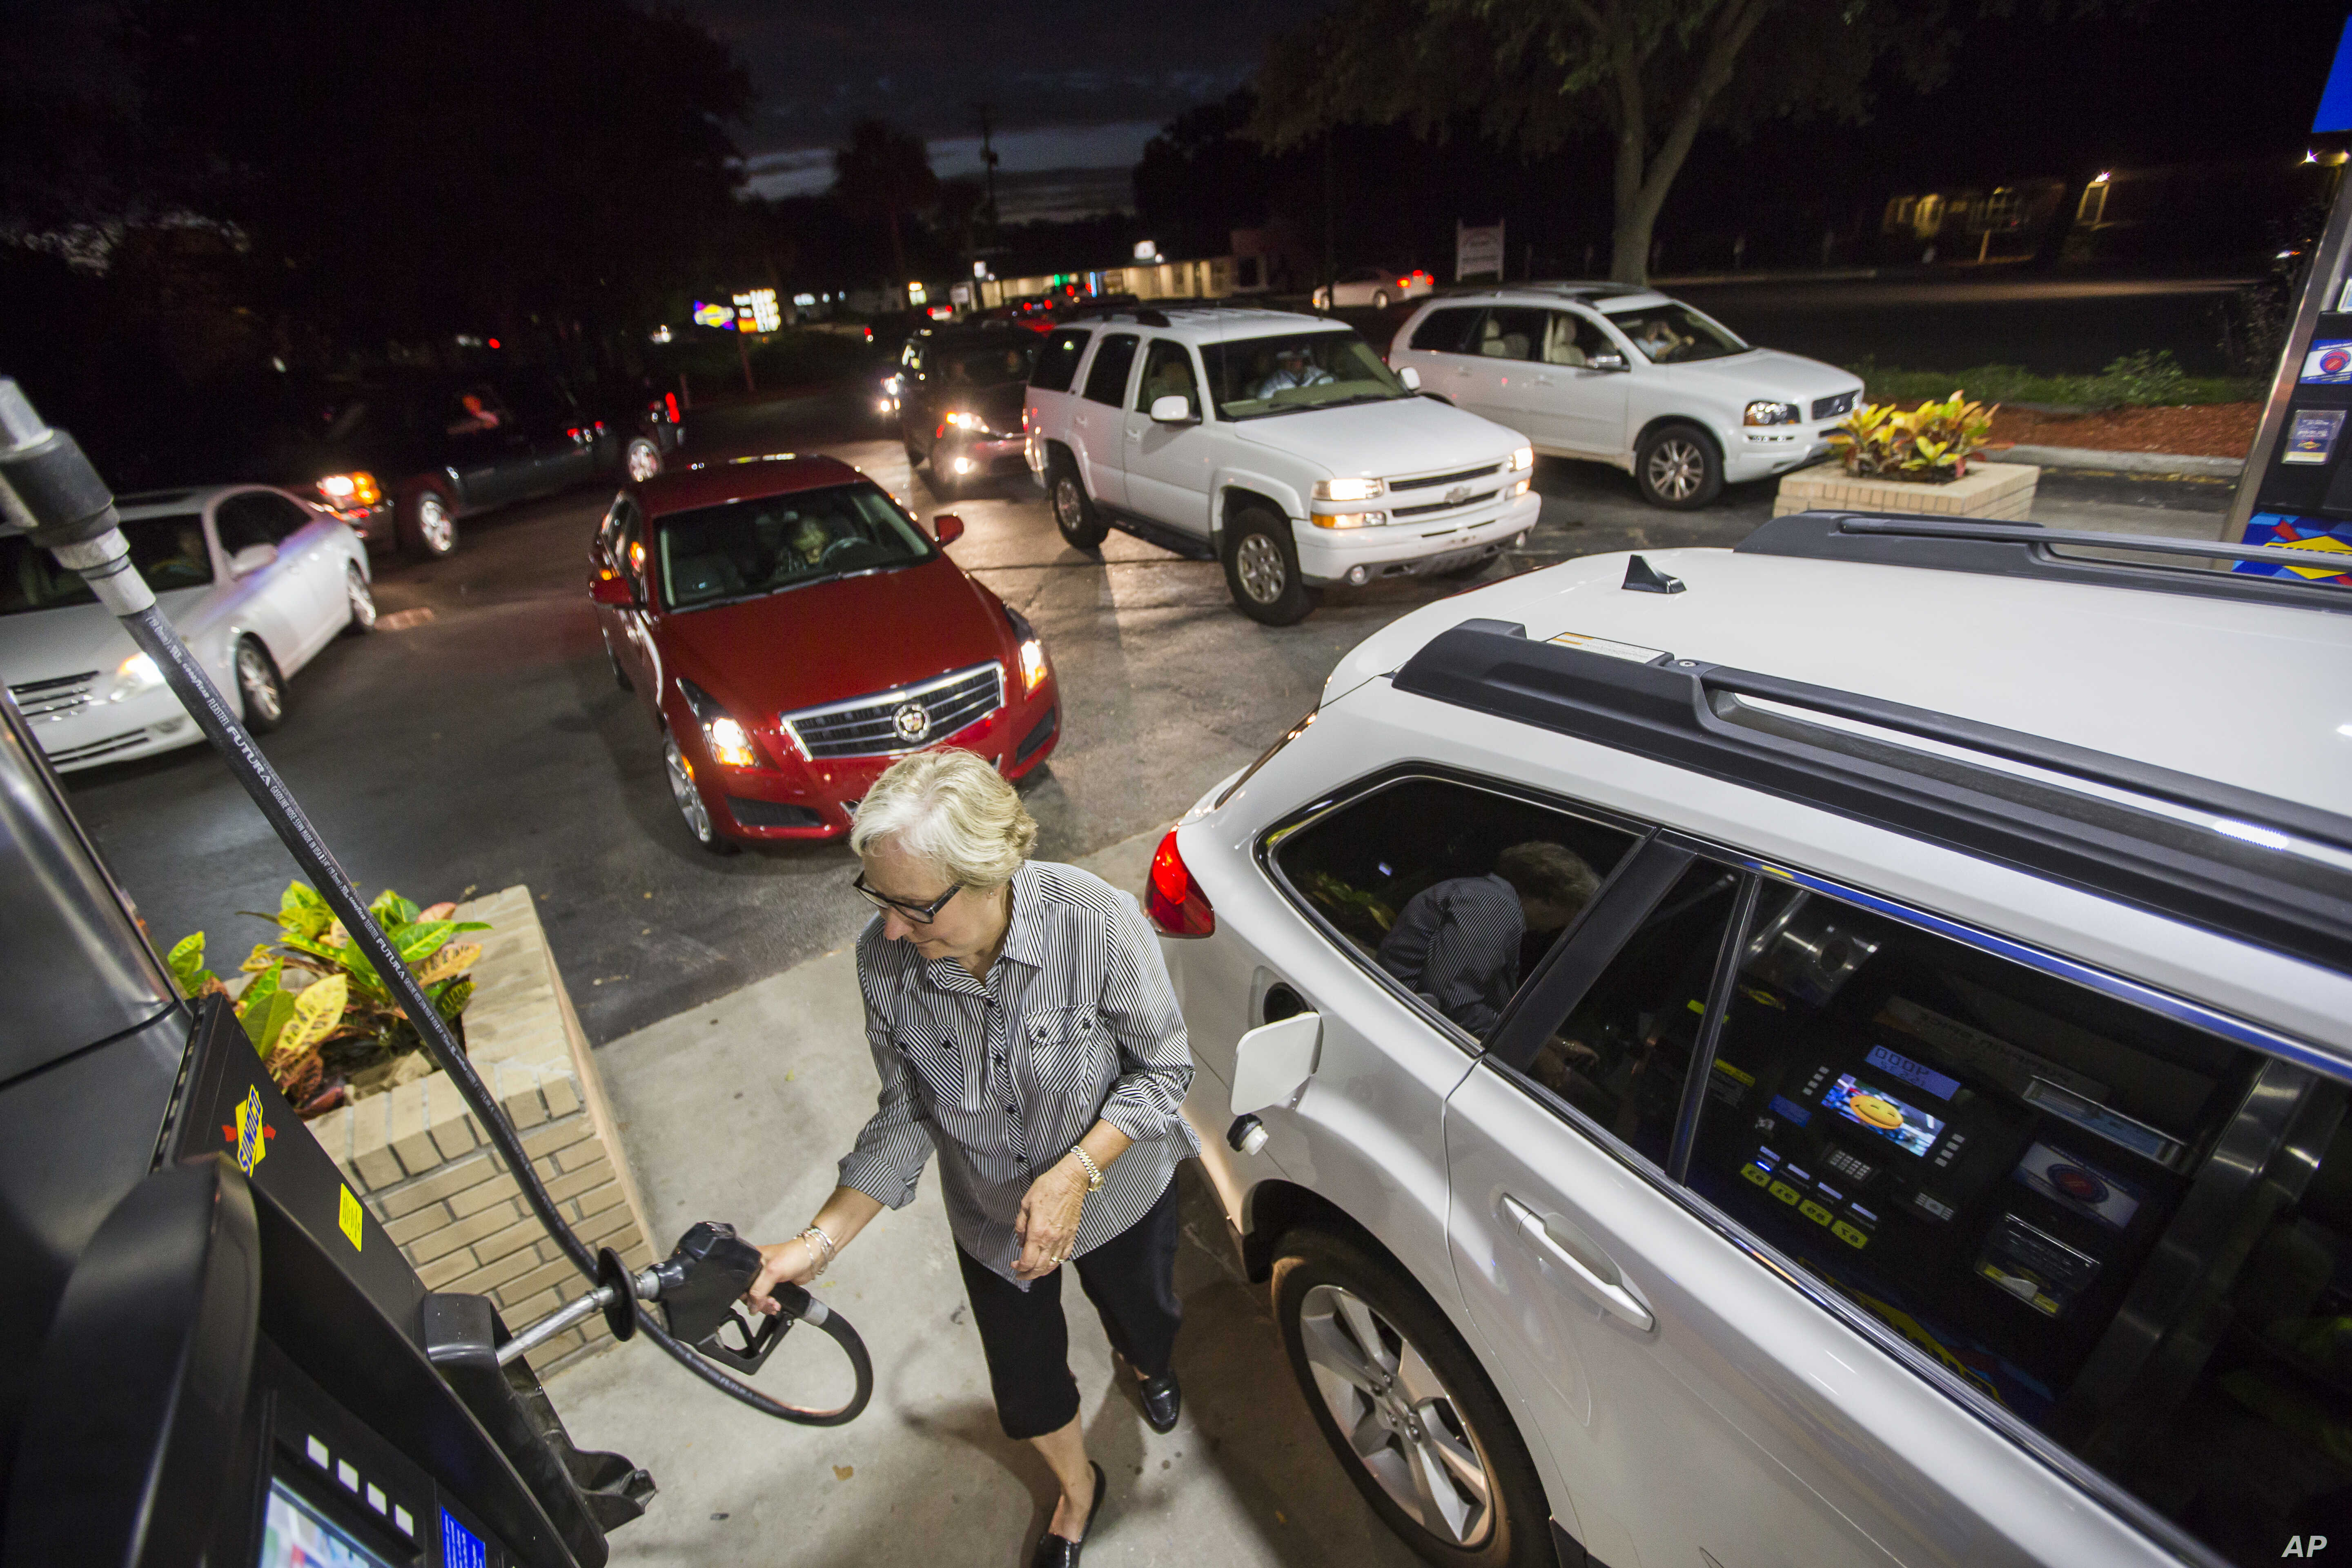 Gayle Brown fills up her car after waiting in line at a Sunoco gas station in Mt. Pleasant, South Carolina, Oct. 4, 2016 in advance of Hurricane Matthew which is expected to affect the South Carolina coast by the weekend.